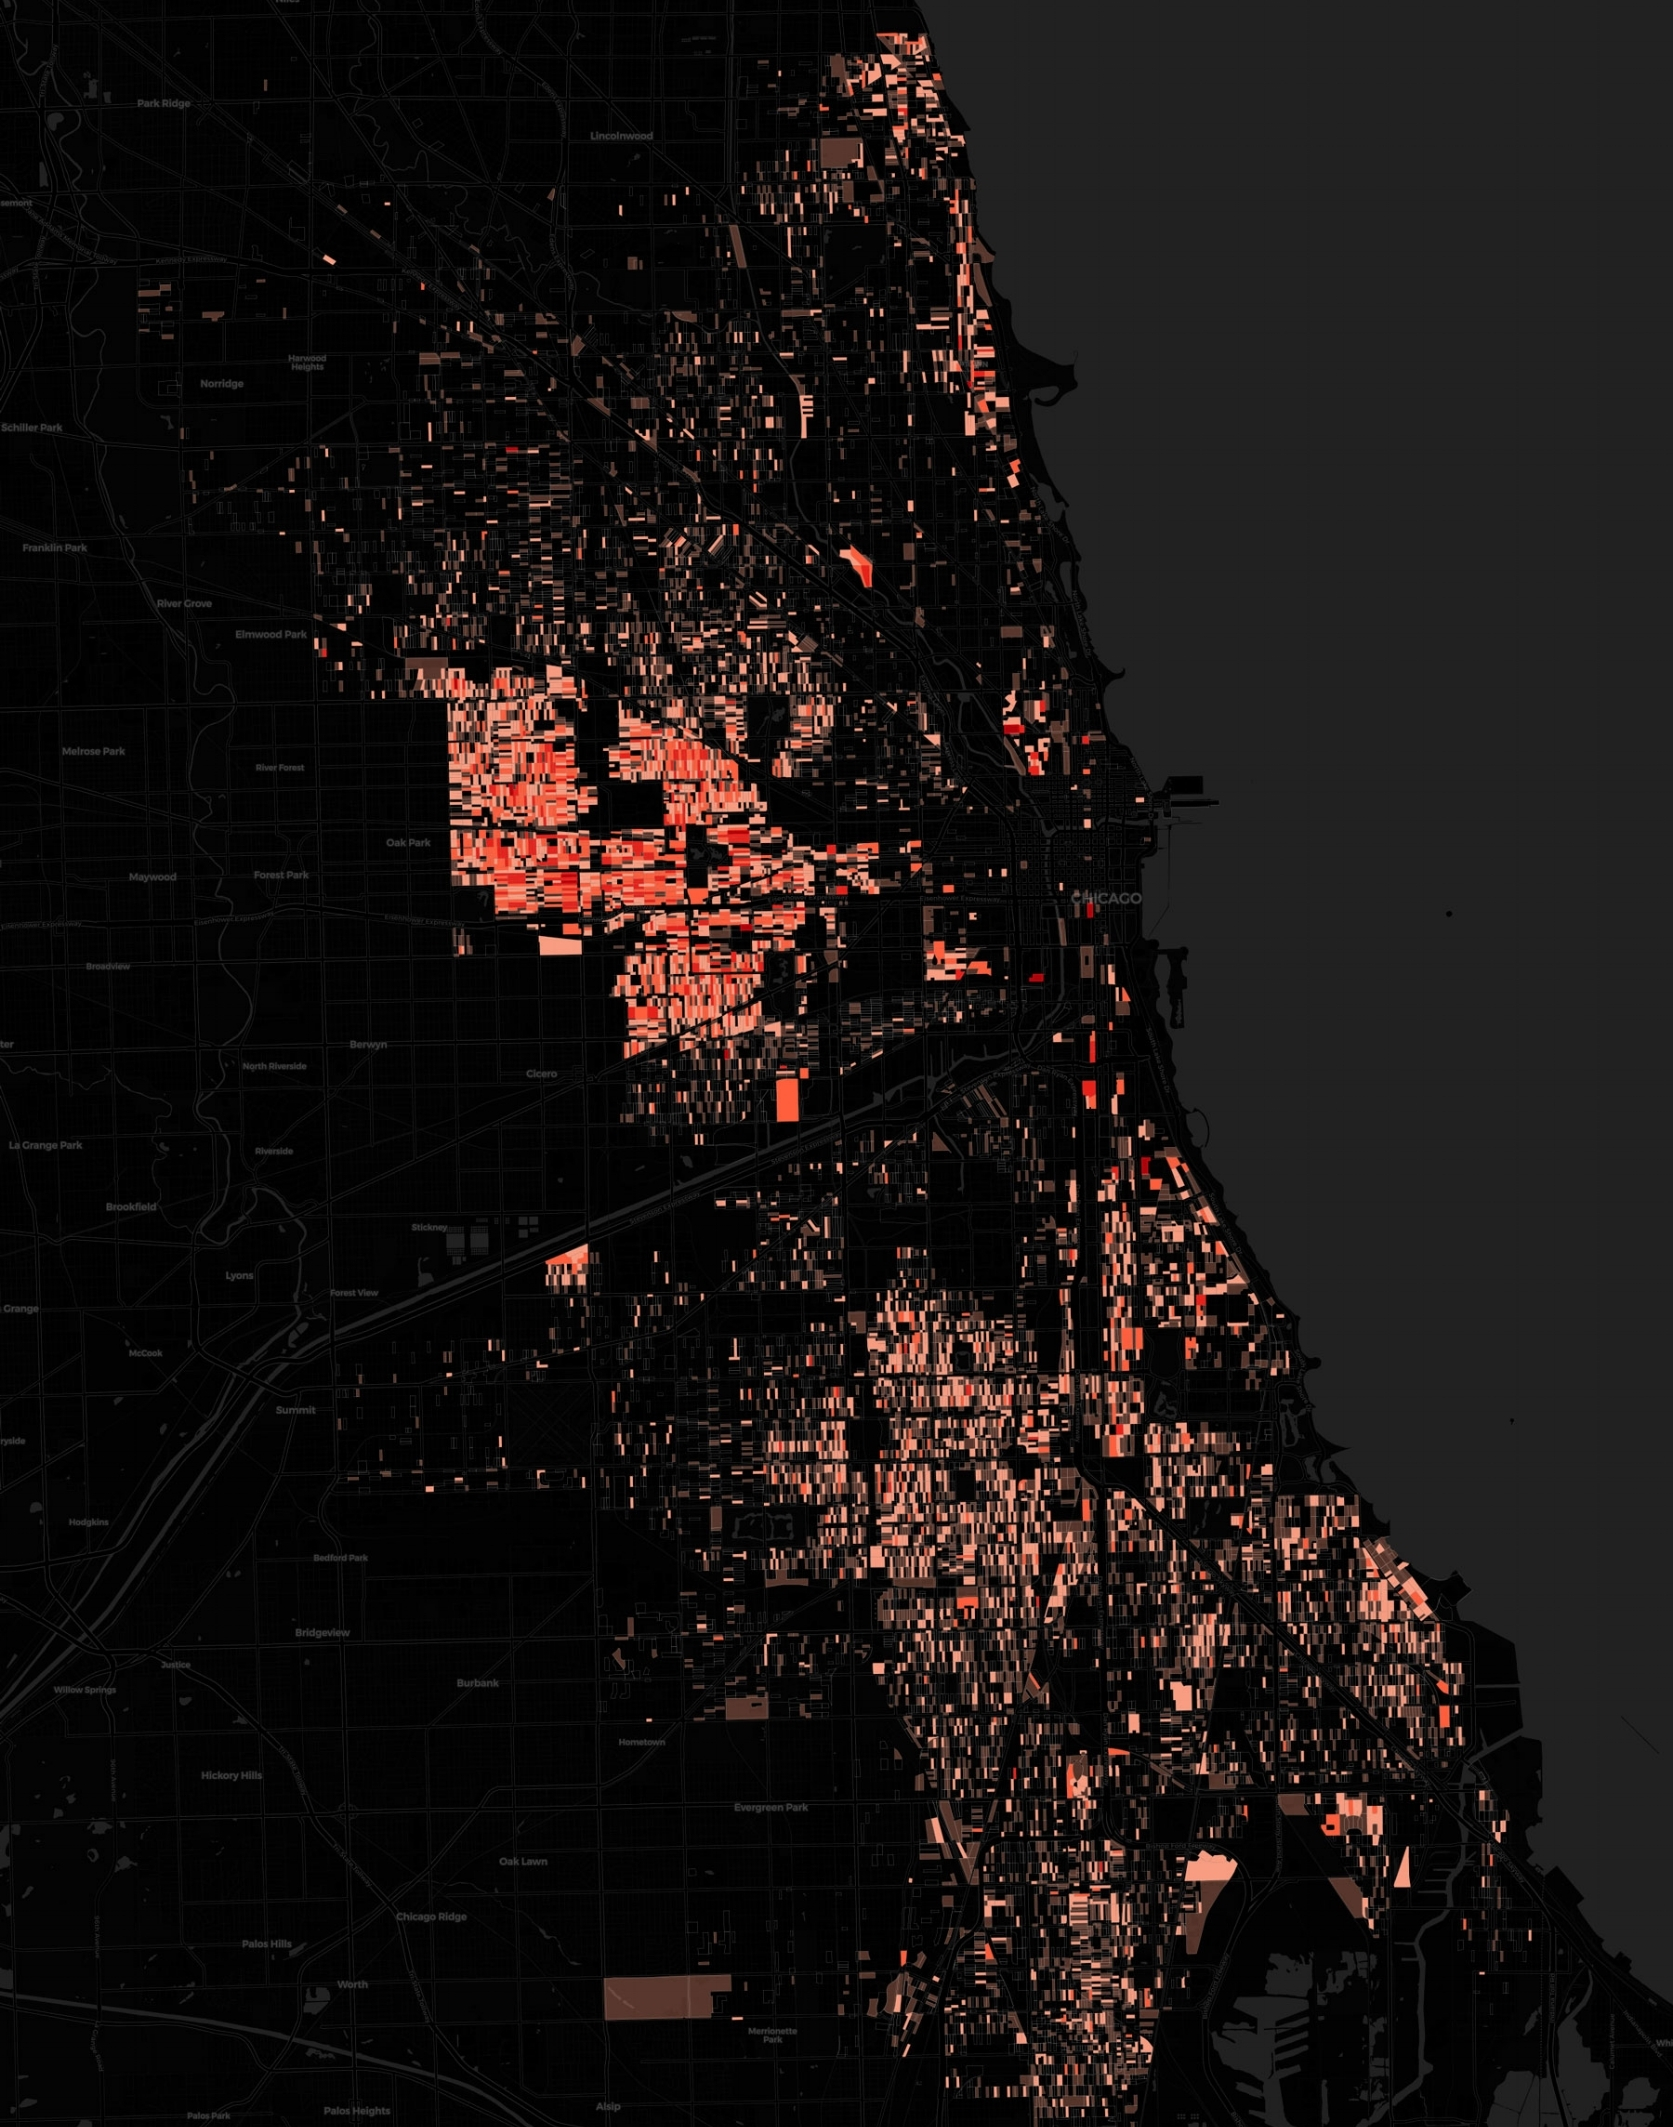 chicagos-million-dollar-blocks.jpg